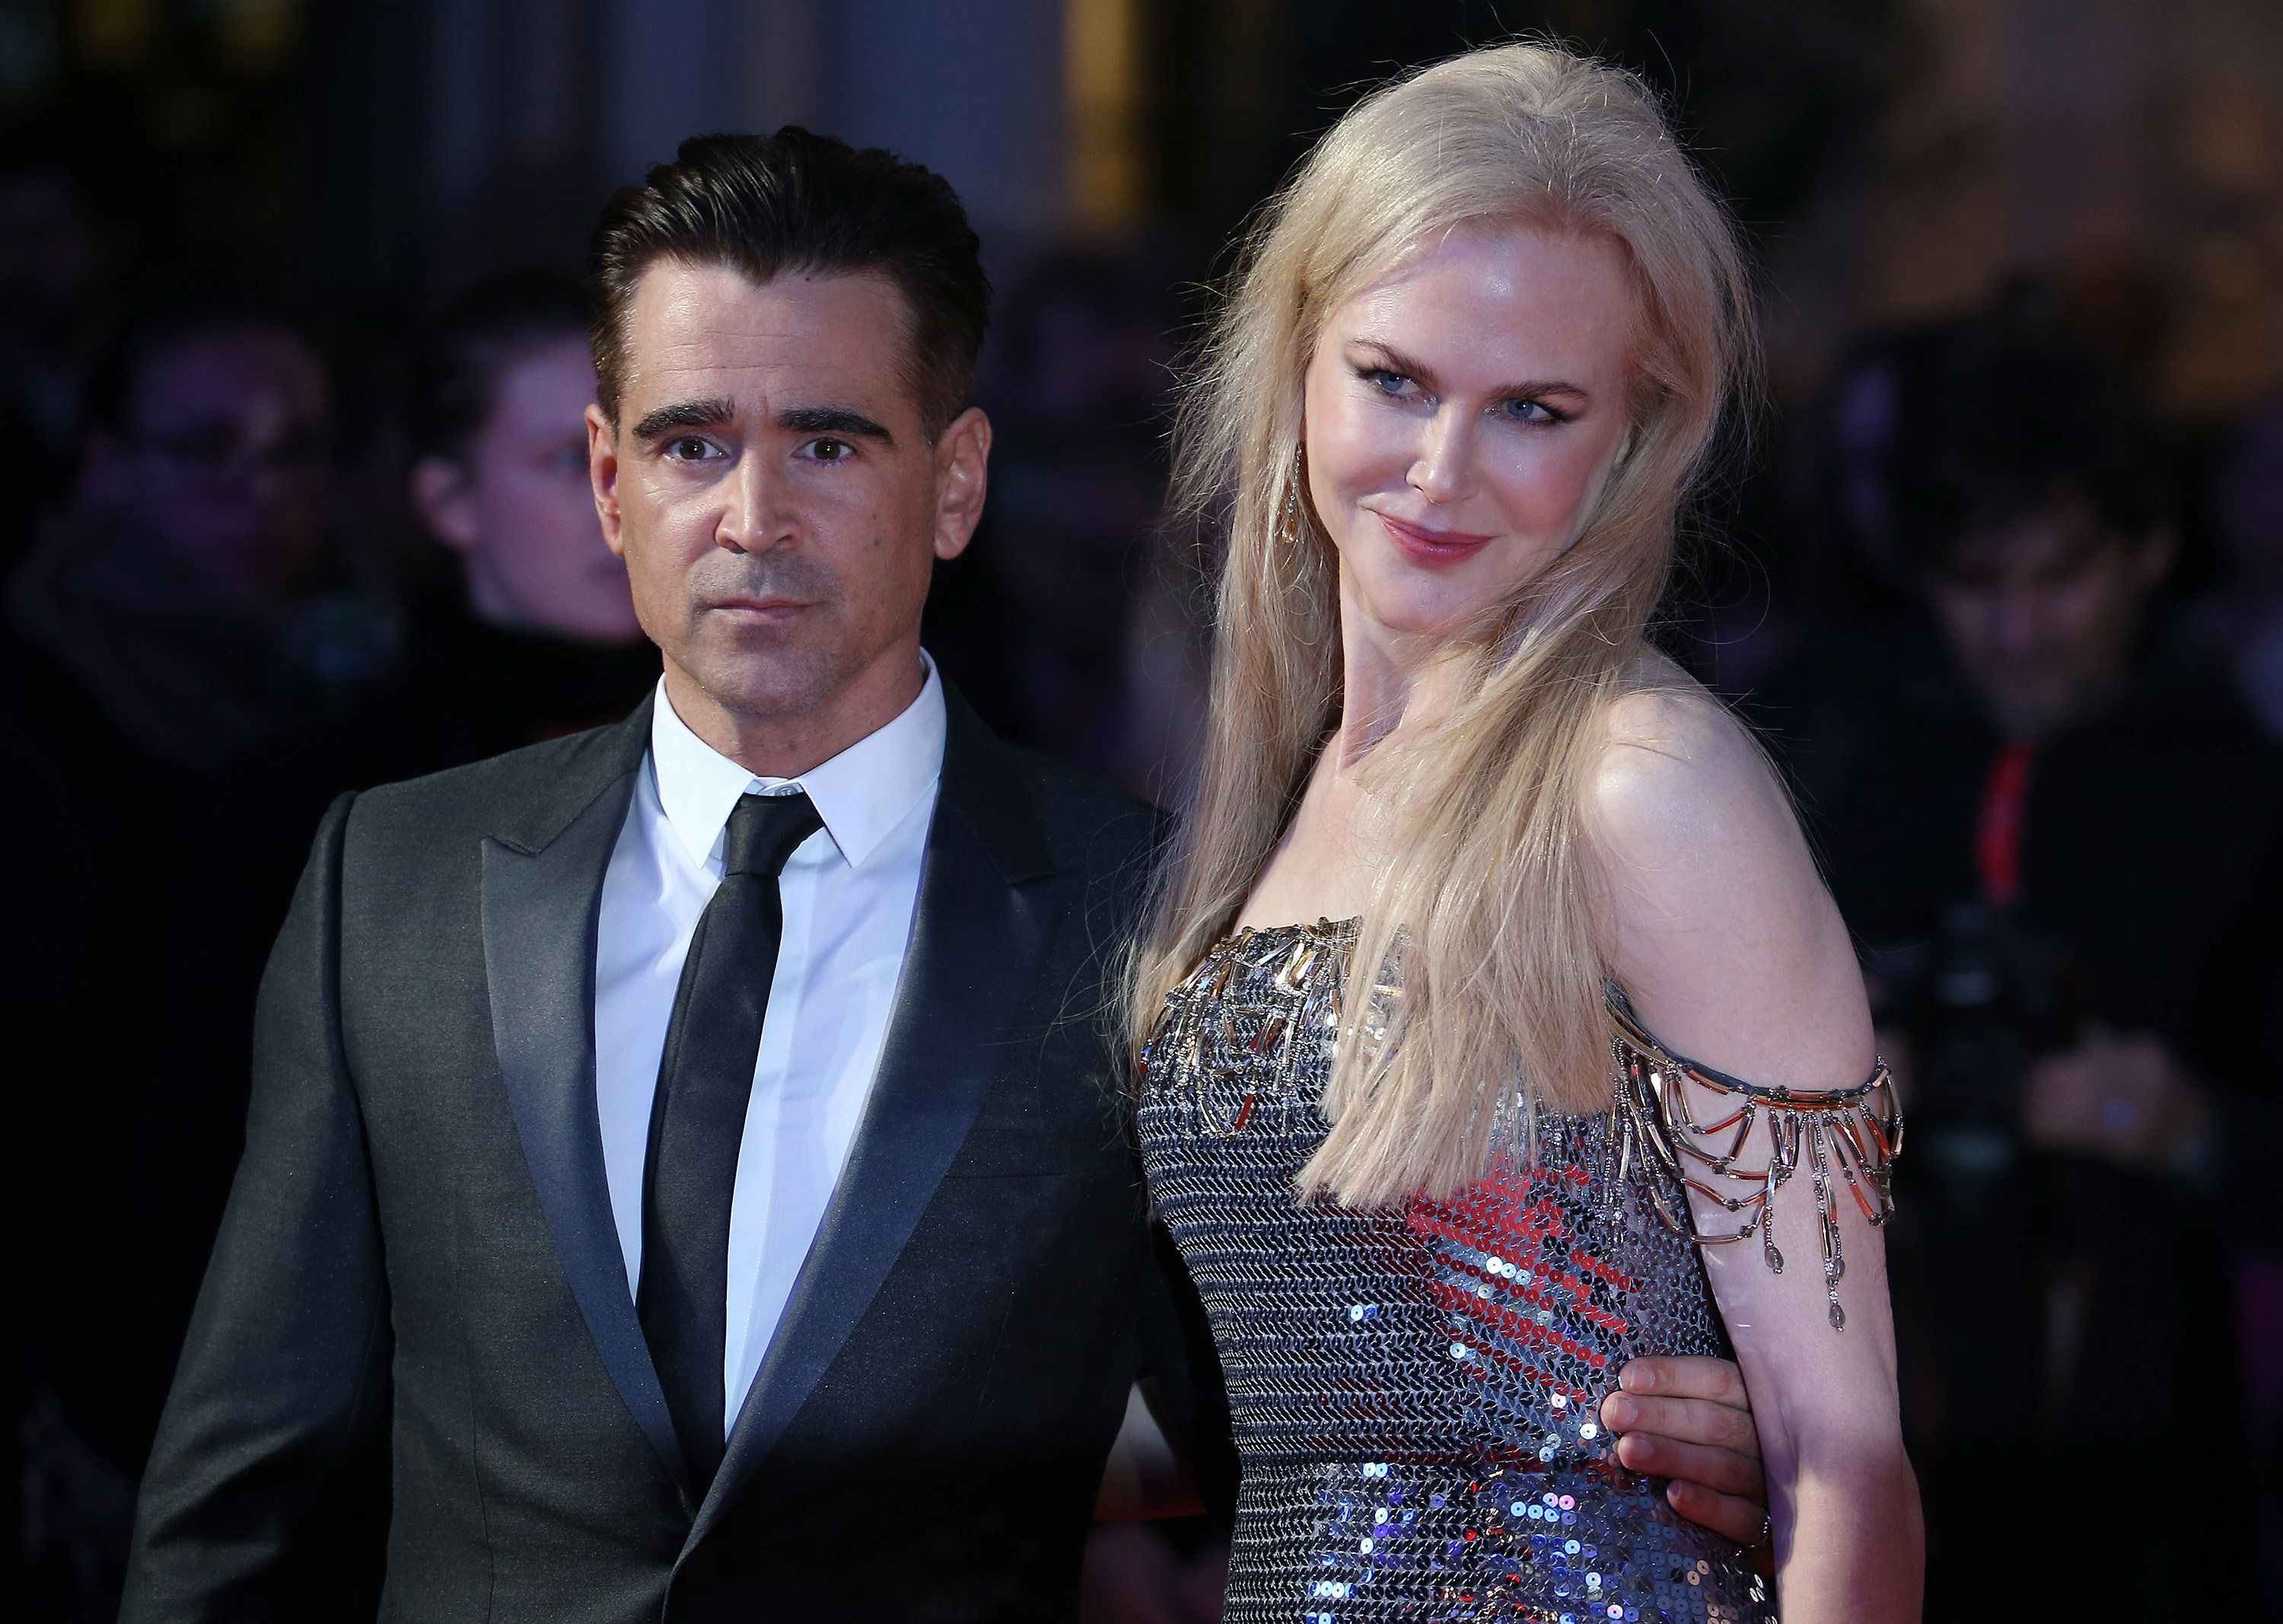 LONDON, ENGLAND - OCTOBER 12:  Colin Farrell and Nicole Kidman attend the Headline Gala Screening & UK Premiere of 'Killing of a Sacred Deer' during the 61st BFI London Film Festival on October 12, 2017 in London, England.  (Photo by Fred Duval/FilmMagic)